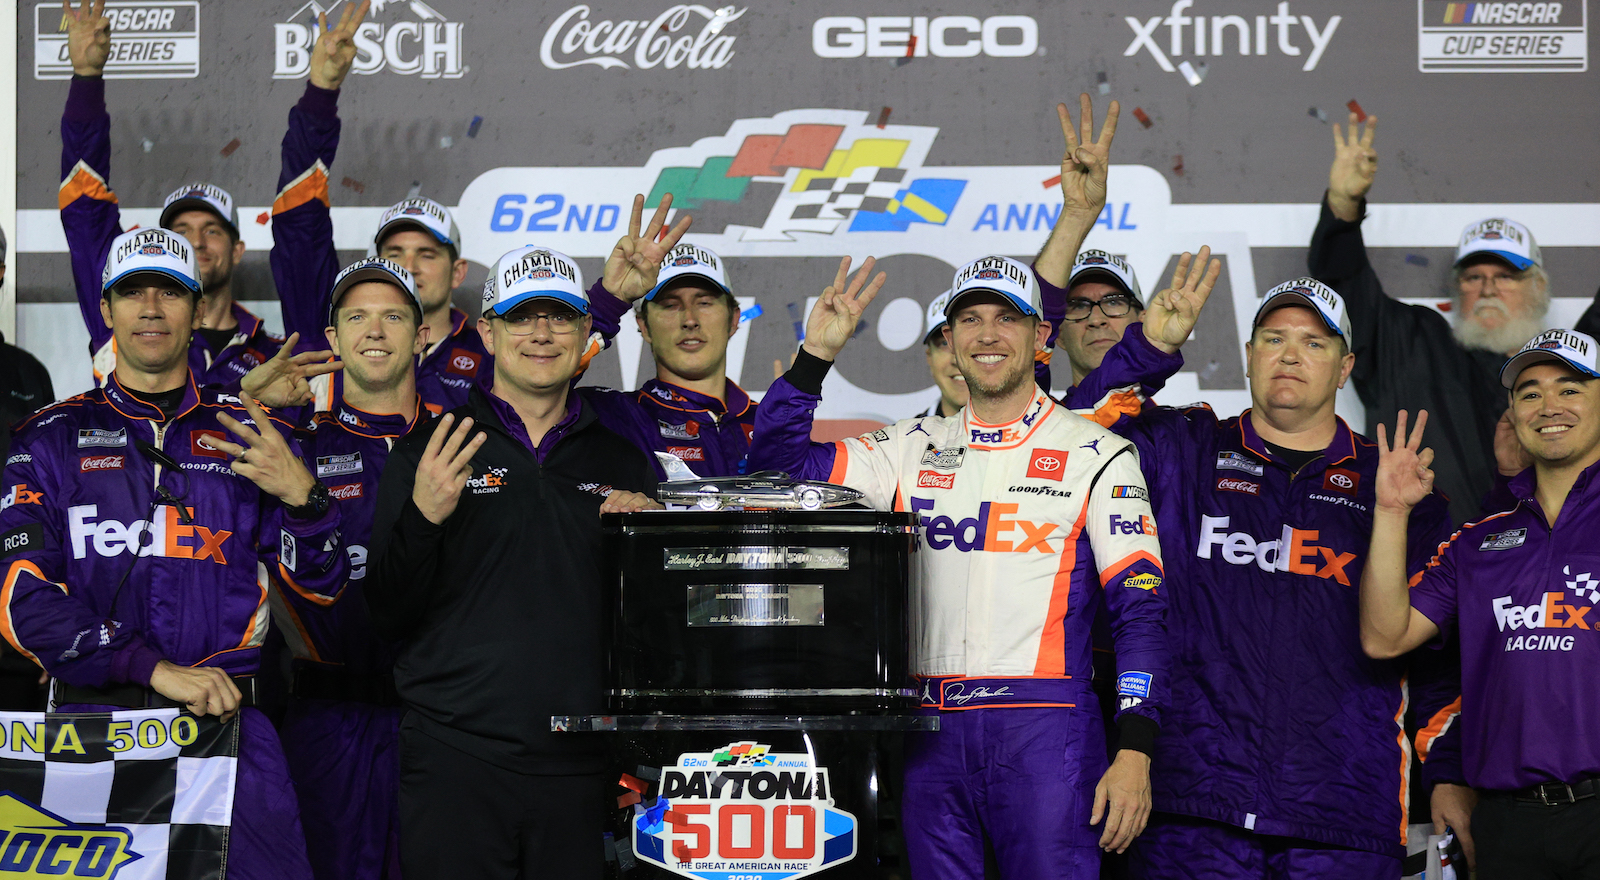 Hamlin wins 3rd Daytona 500; Newman hospitalized 'in serious condition'